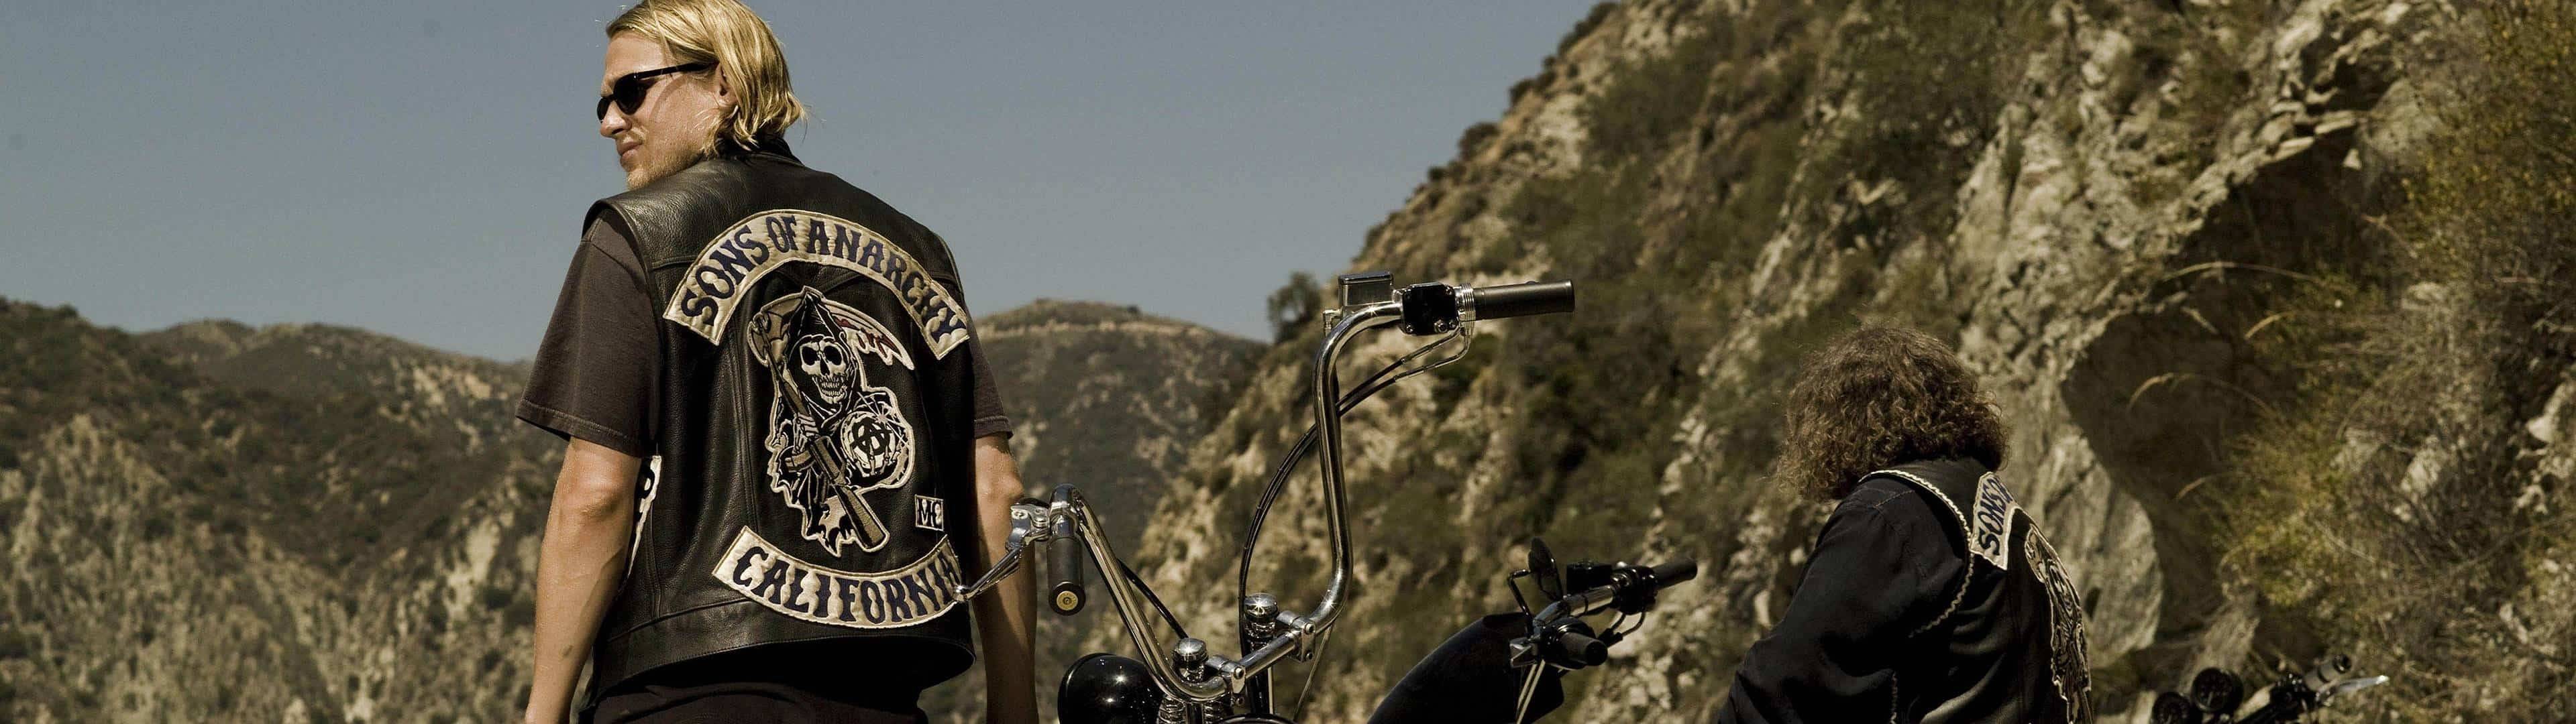 sons of anarchy jax dual monitor wallpaper